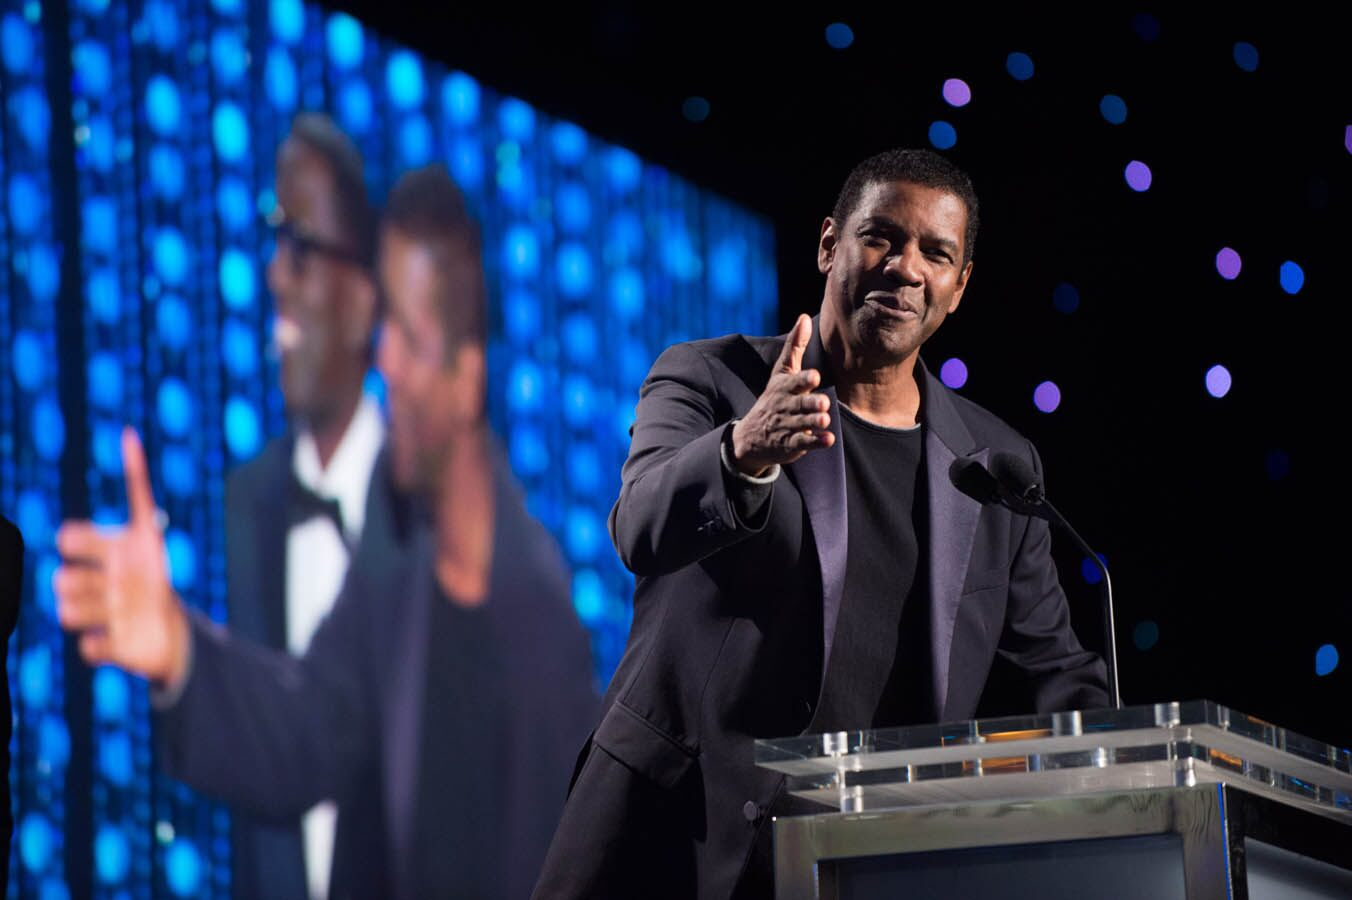 Oscar®-winning actor Denzel Washington speaks as part of the award presentation to Honorary Award recipient Spike Lee at the 2015 Governors Awards